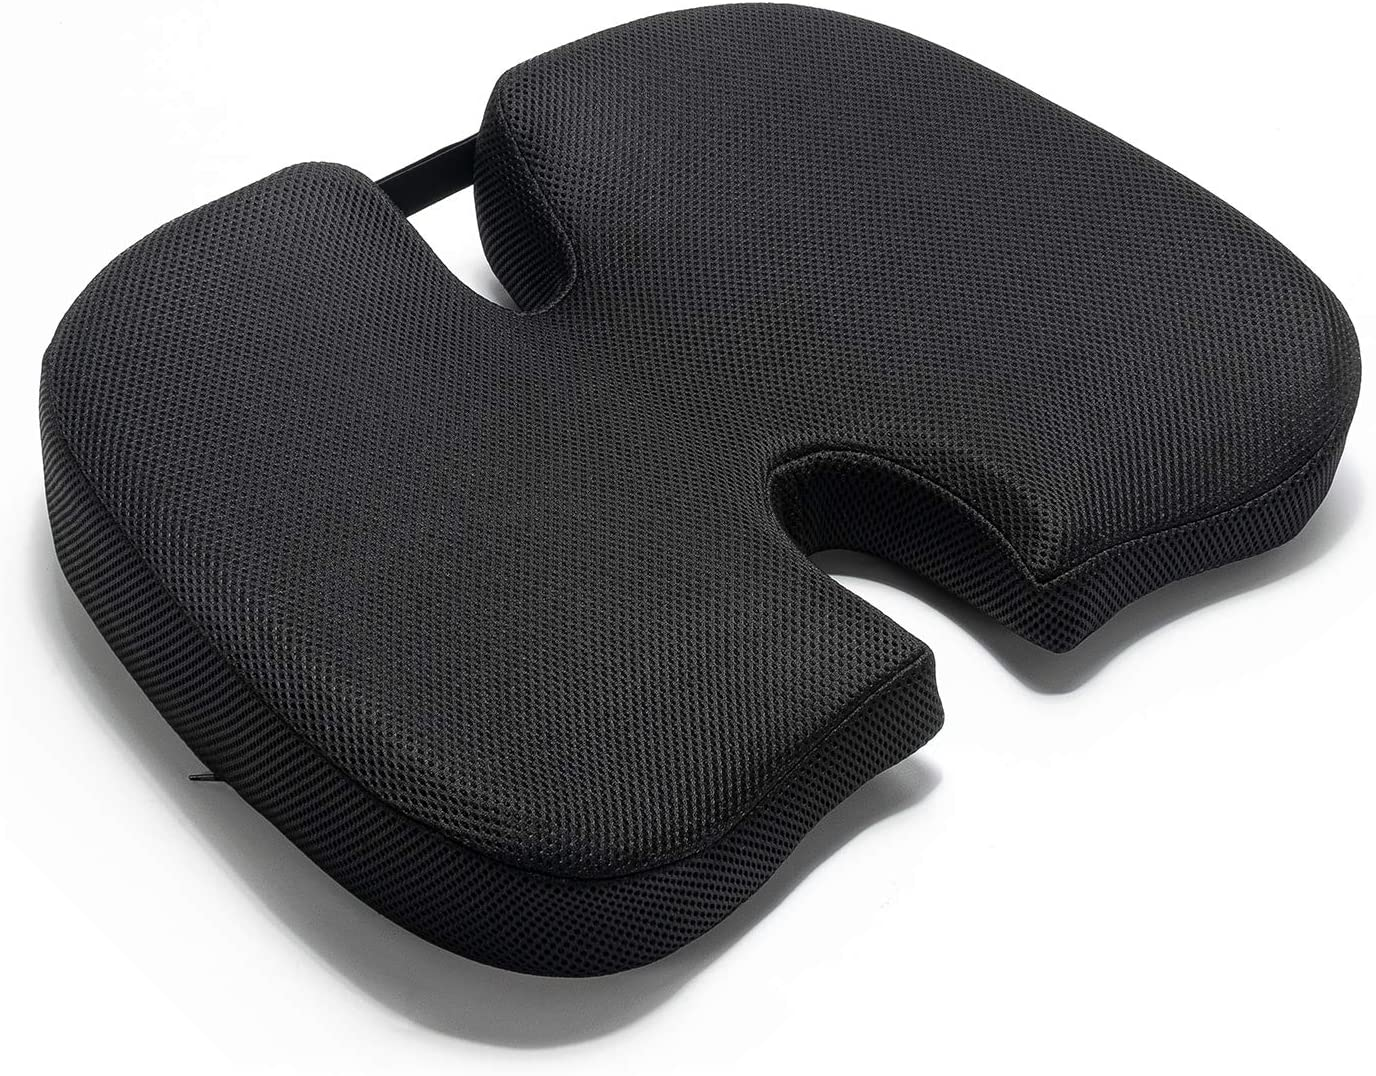 anzhixiu New Supportive Memory Foam Seat Cushions for Office Chairs - Ventilated Seat Cushions for Pressure Relief-Black